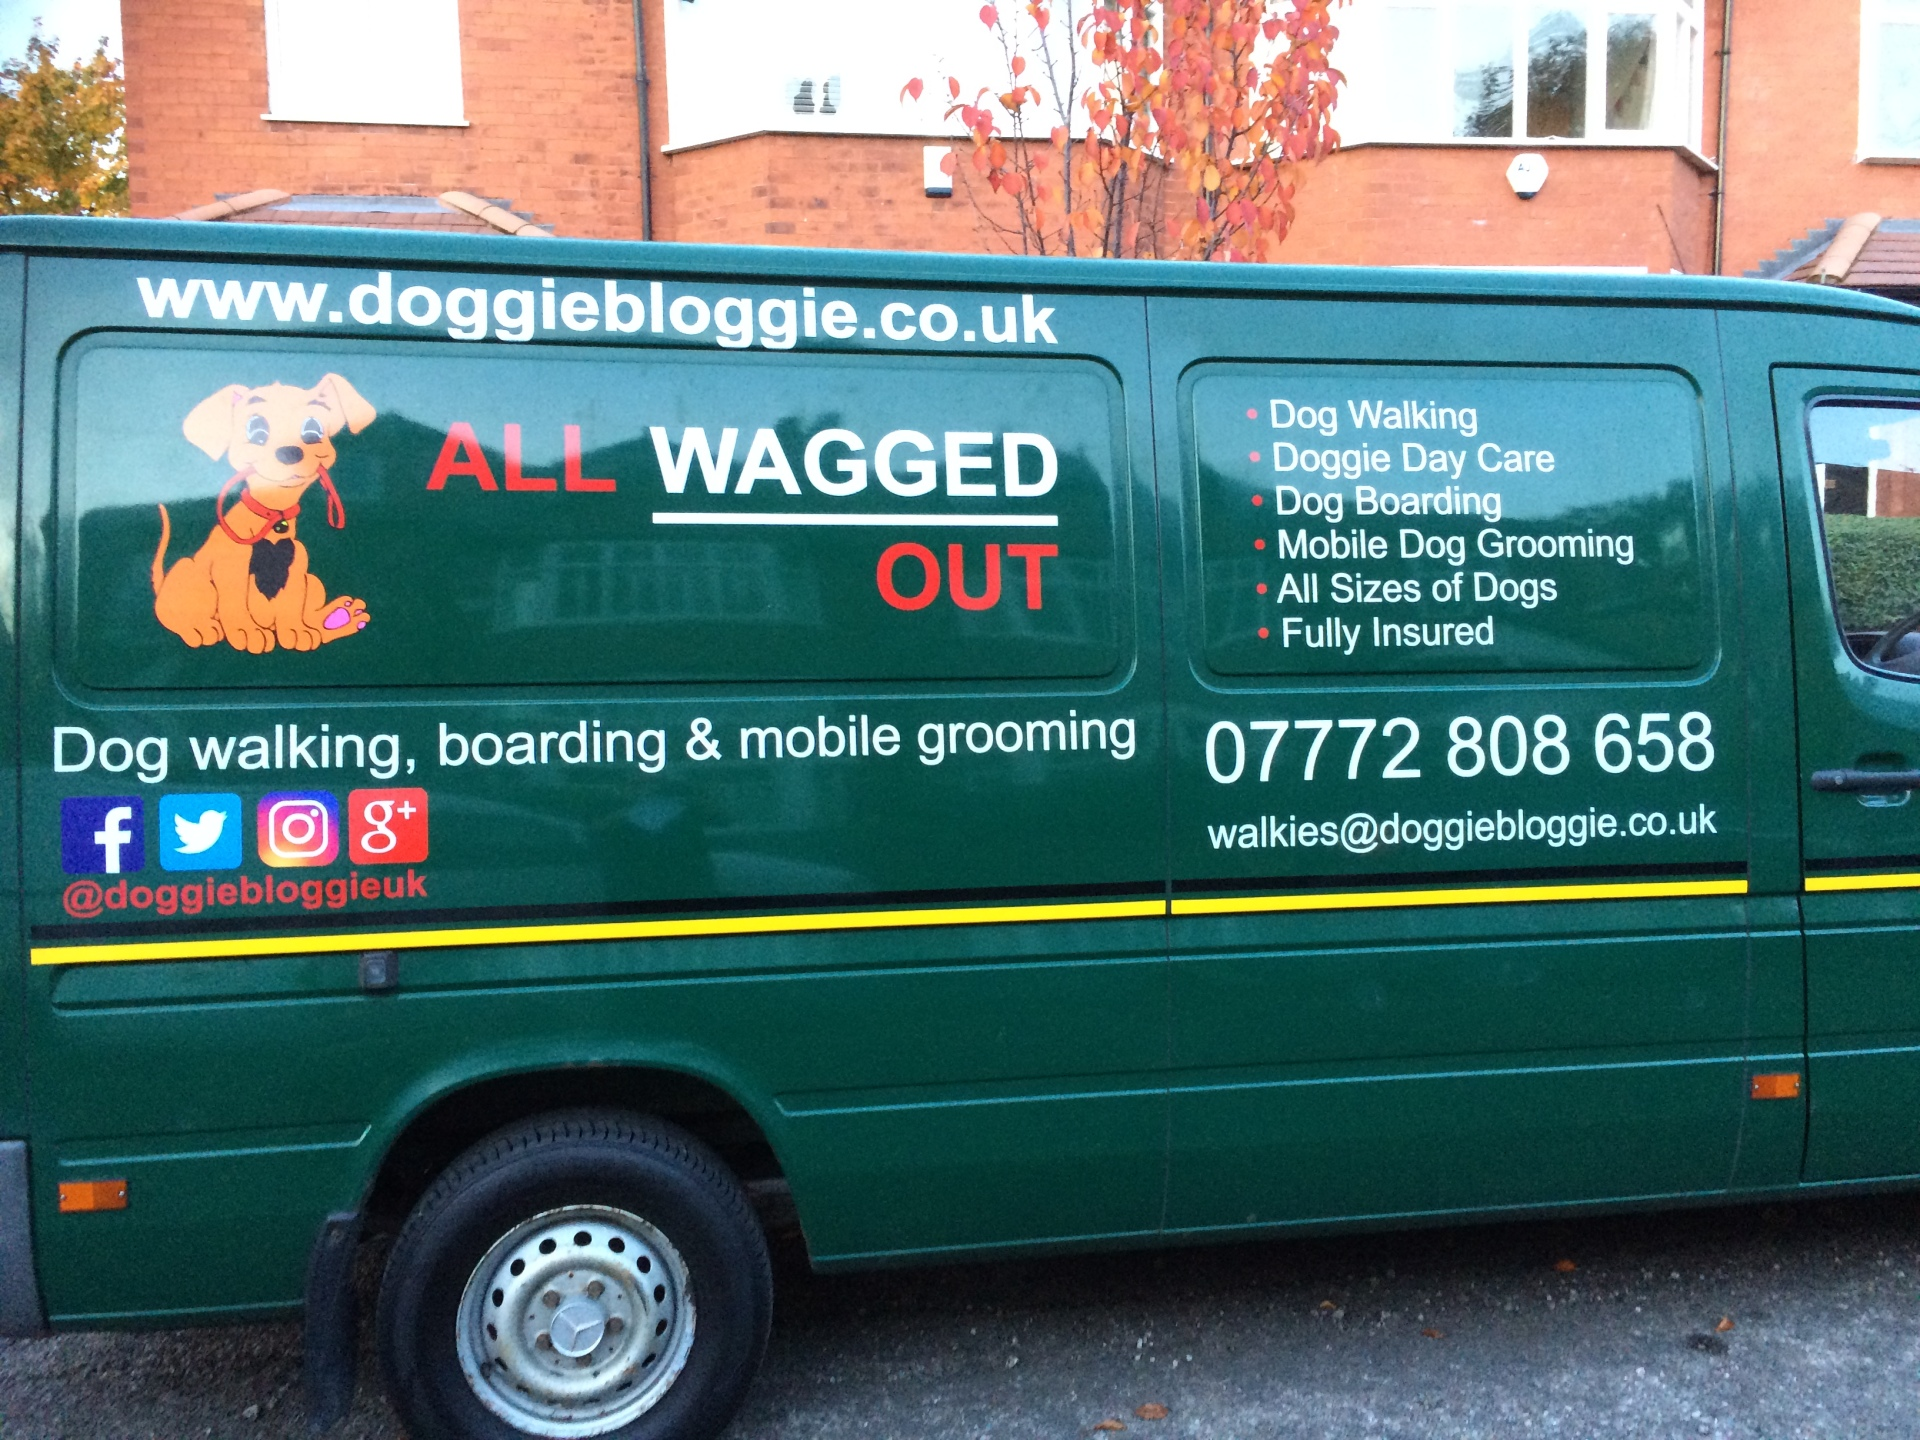 Look out for my lovely green van!